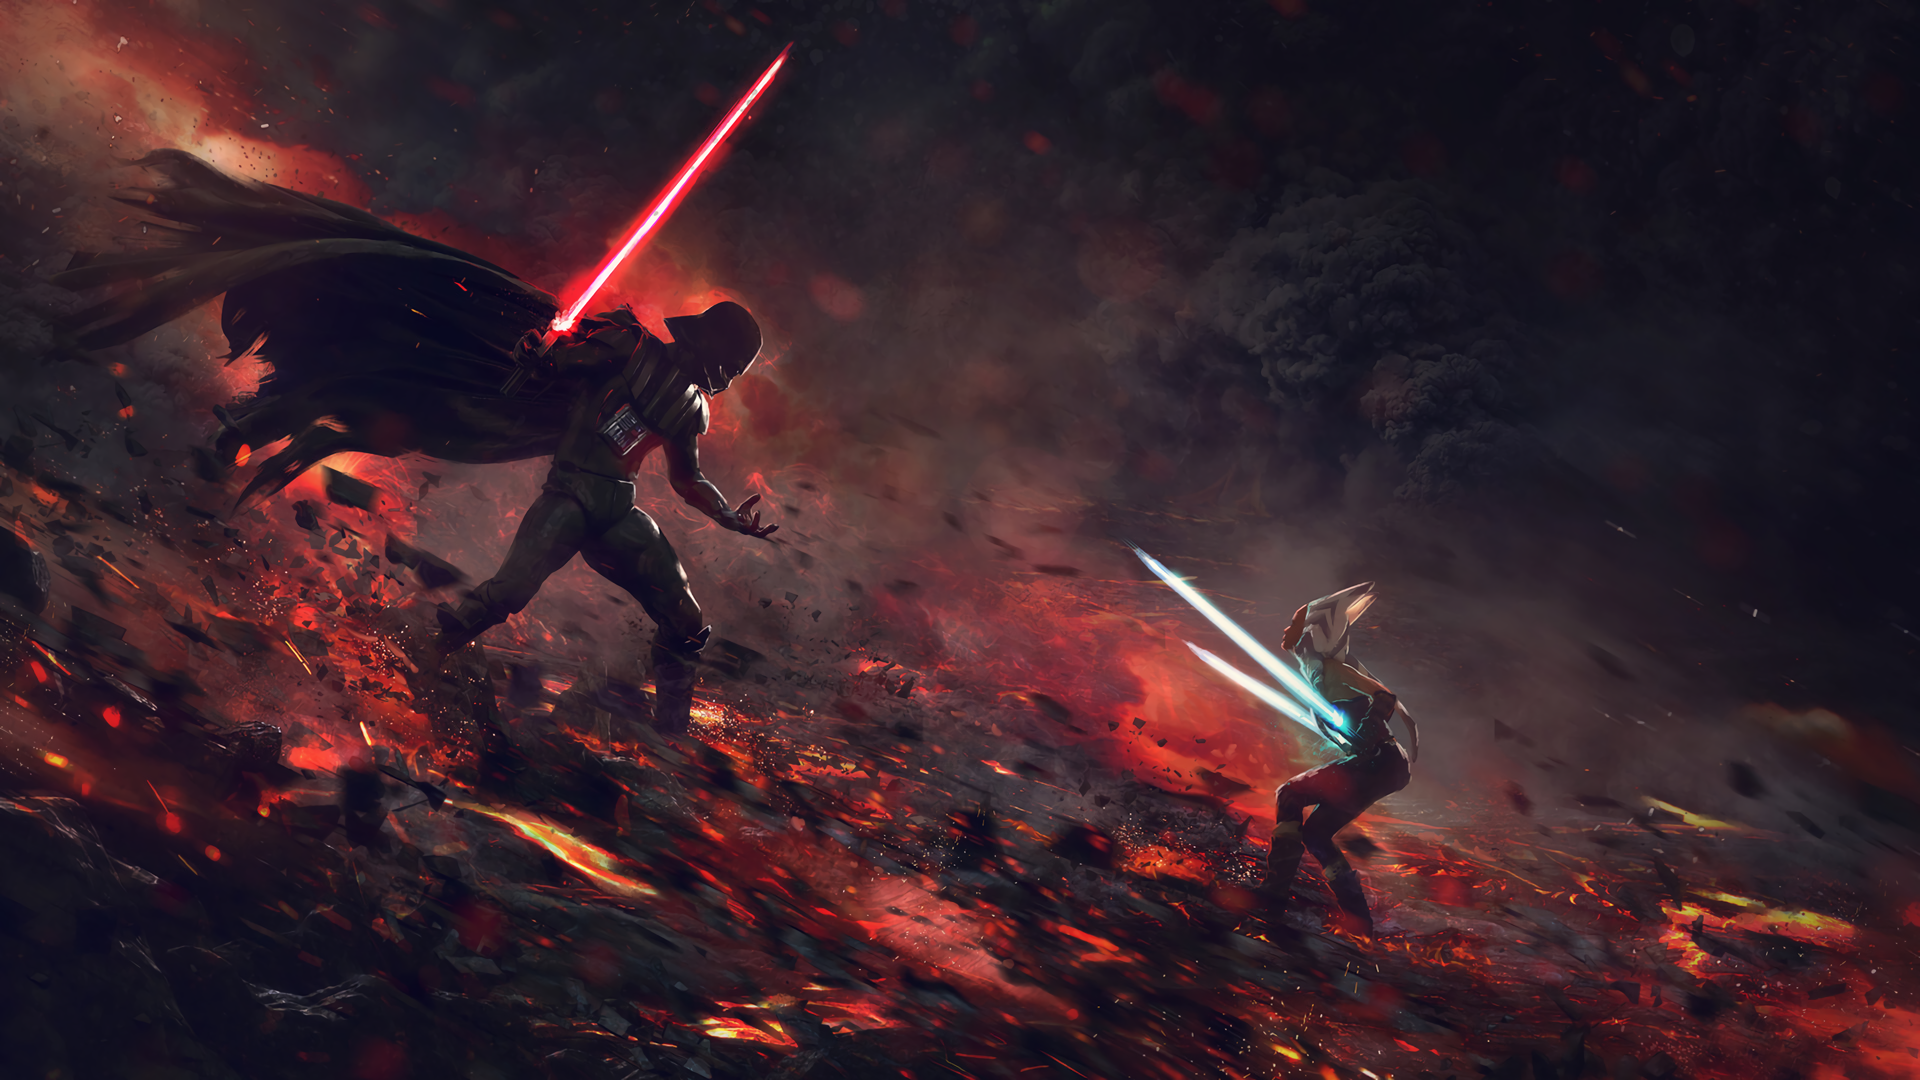 Star Wars Full HD Wallpaper and Background 1920x1080 ID699220